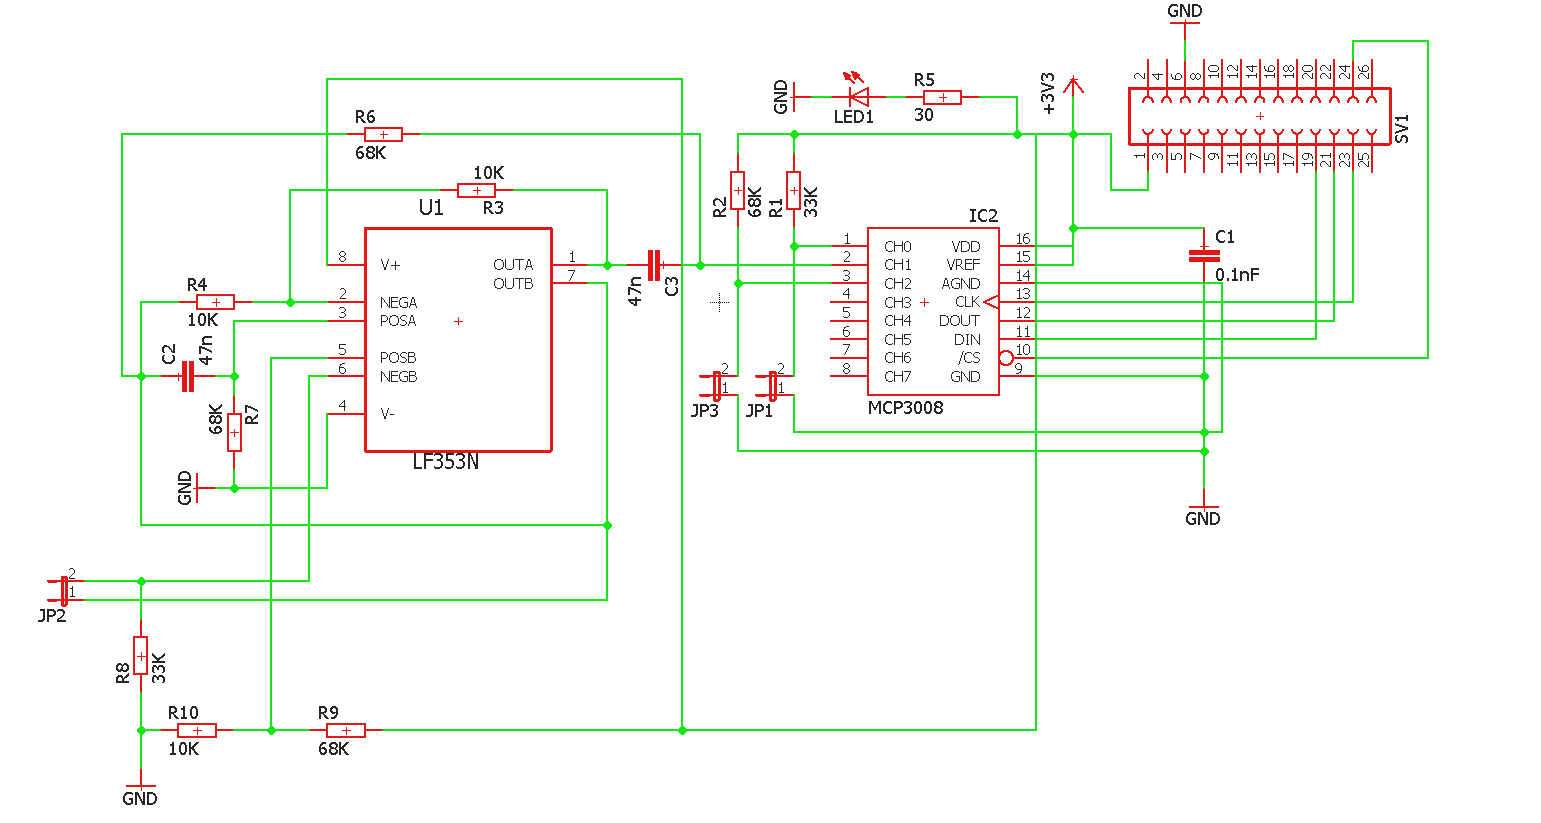 Hardware Raspberrypiteam5 Exercise Sensor Wiki Github Circuit Diagram Voltage Source As Seen By The Schematic 33v Output Was Used To Supply Any Components Which Require A Moisture And Temperature Were Both